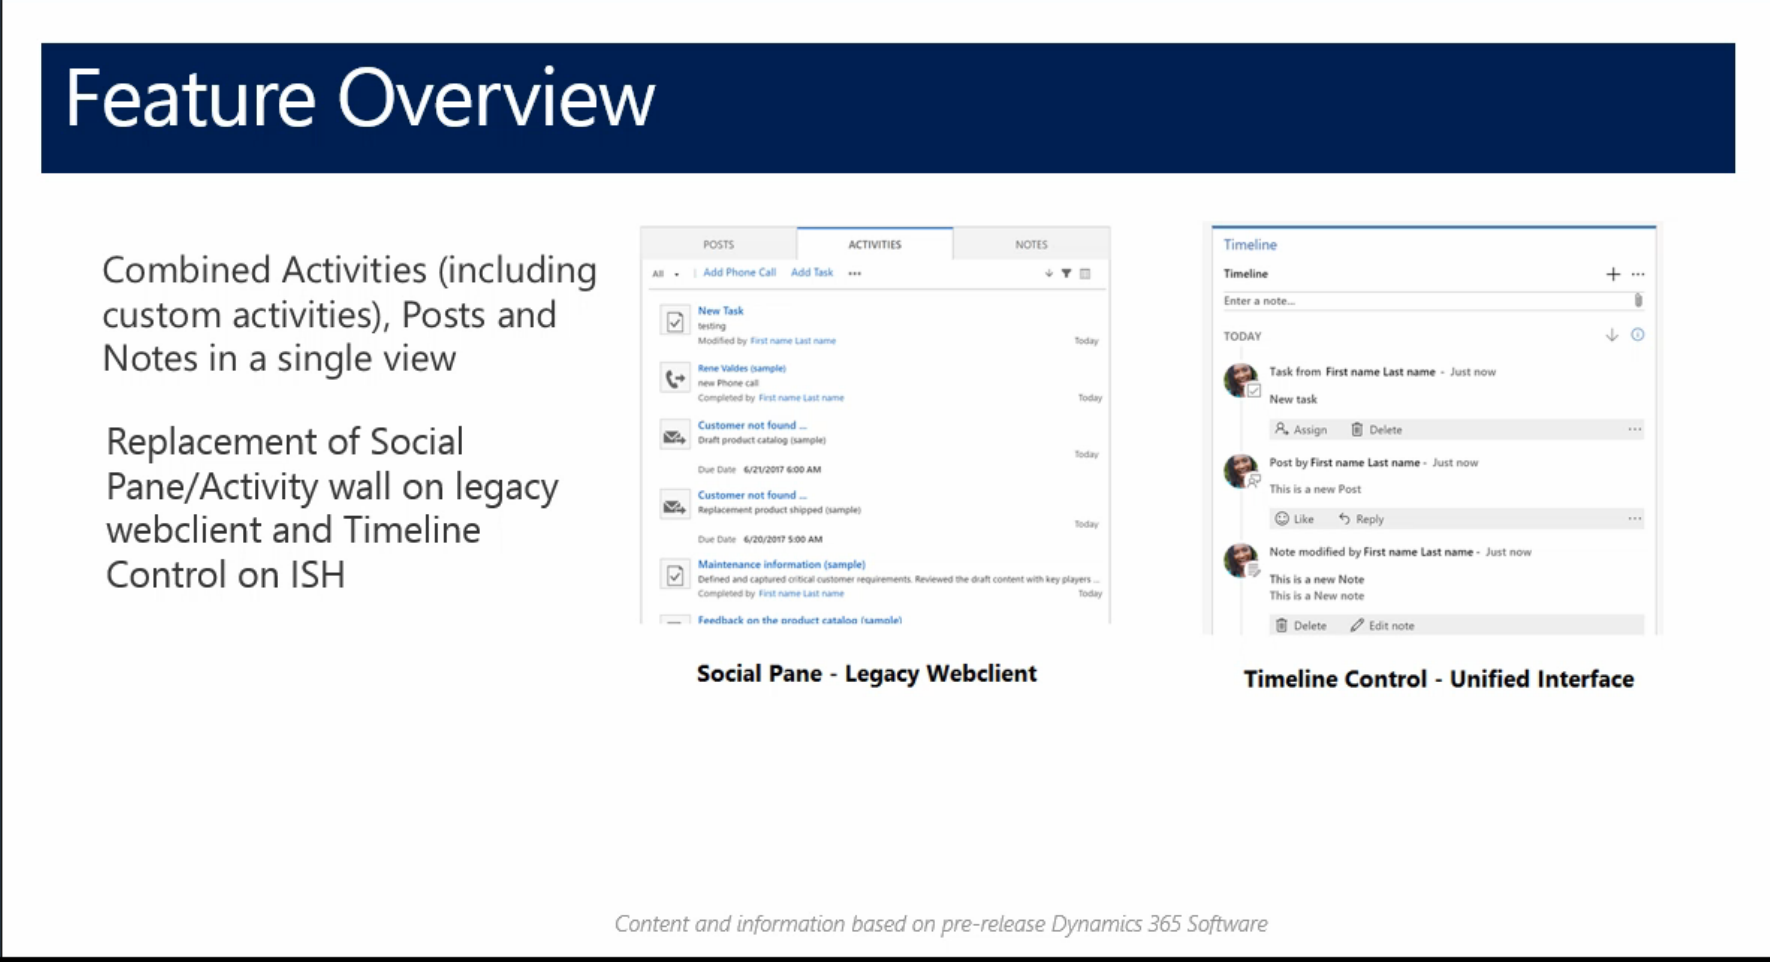 5 Key Themes of the Next Release of Microsoft Dynamics 365_Image 4